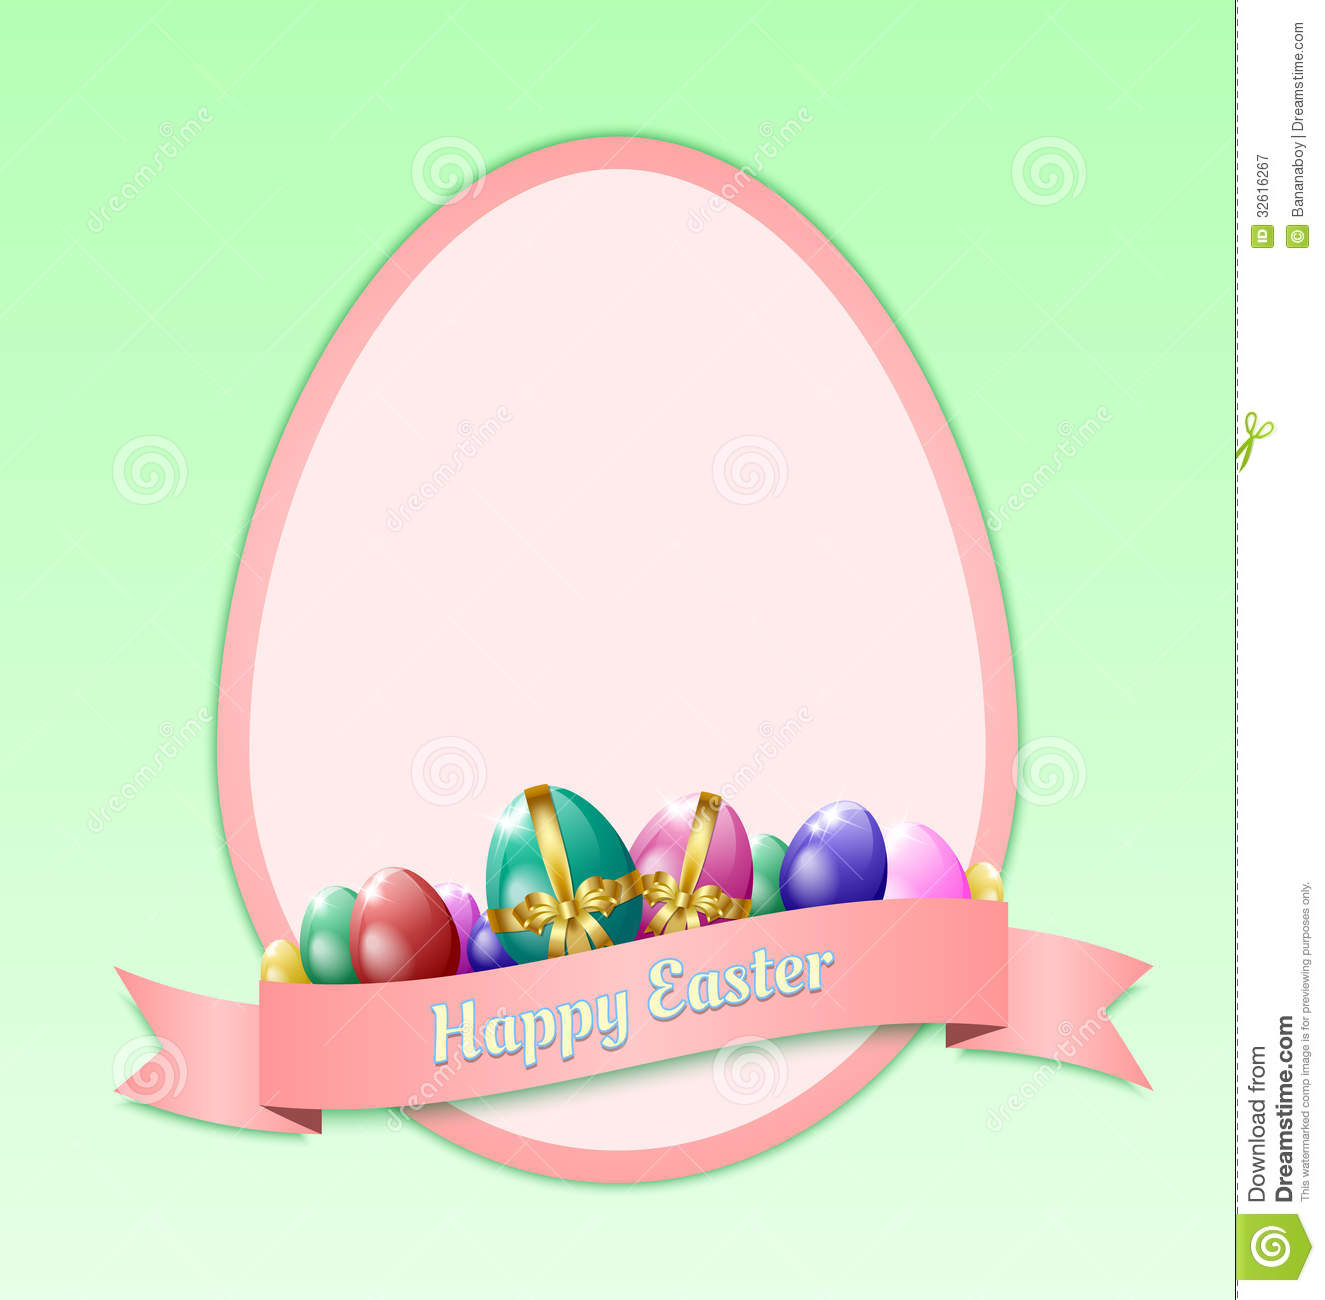 Happy Easter Greeting Card Template Royalty Free Stock Photography ...